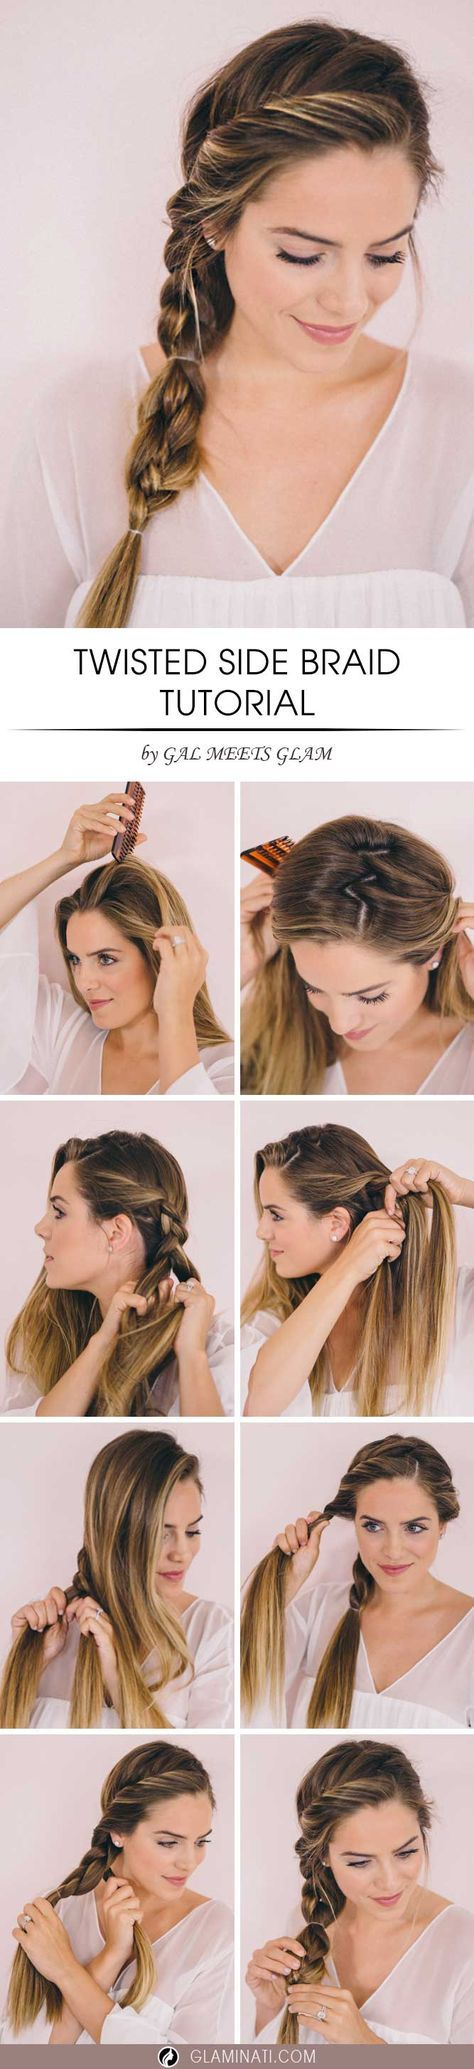 Twisted side braid for various occasions fancy party updo and fancy